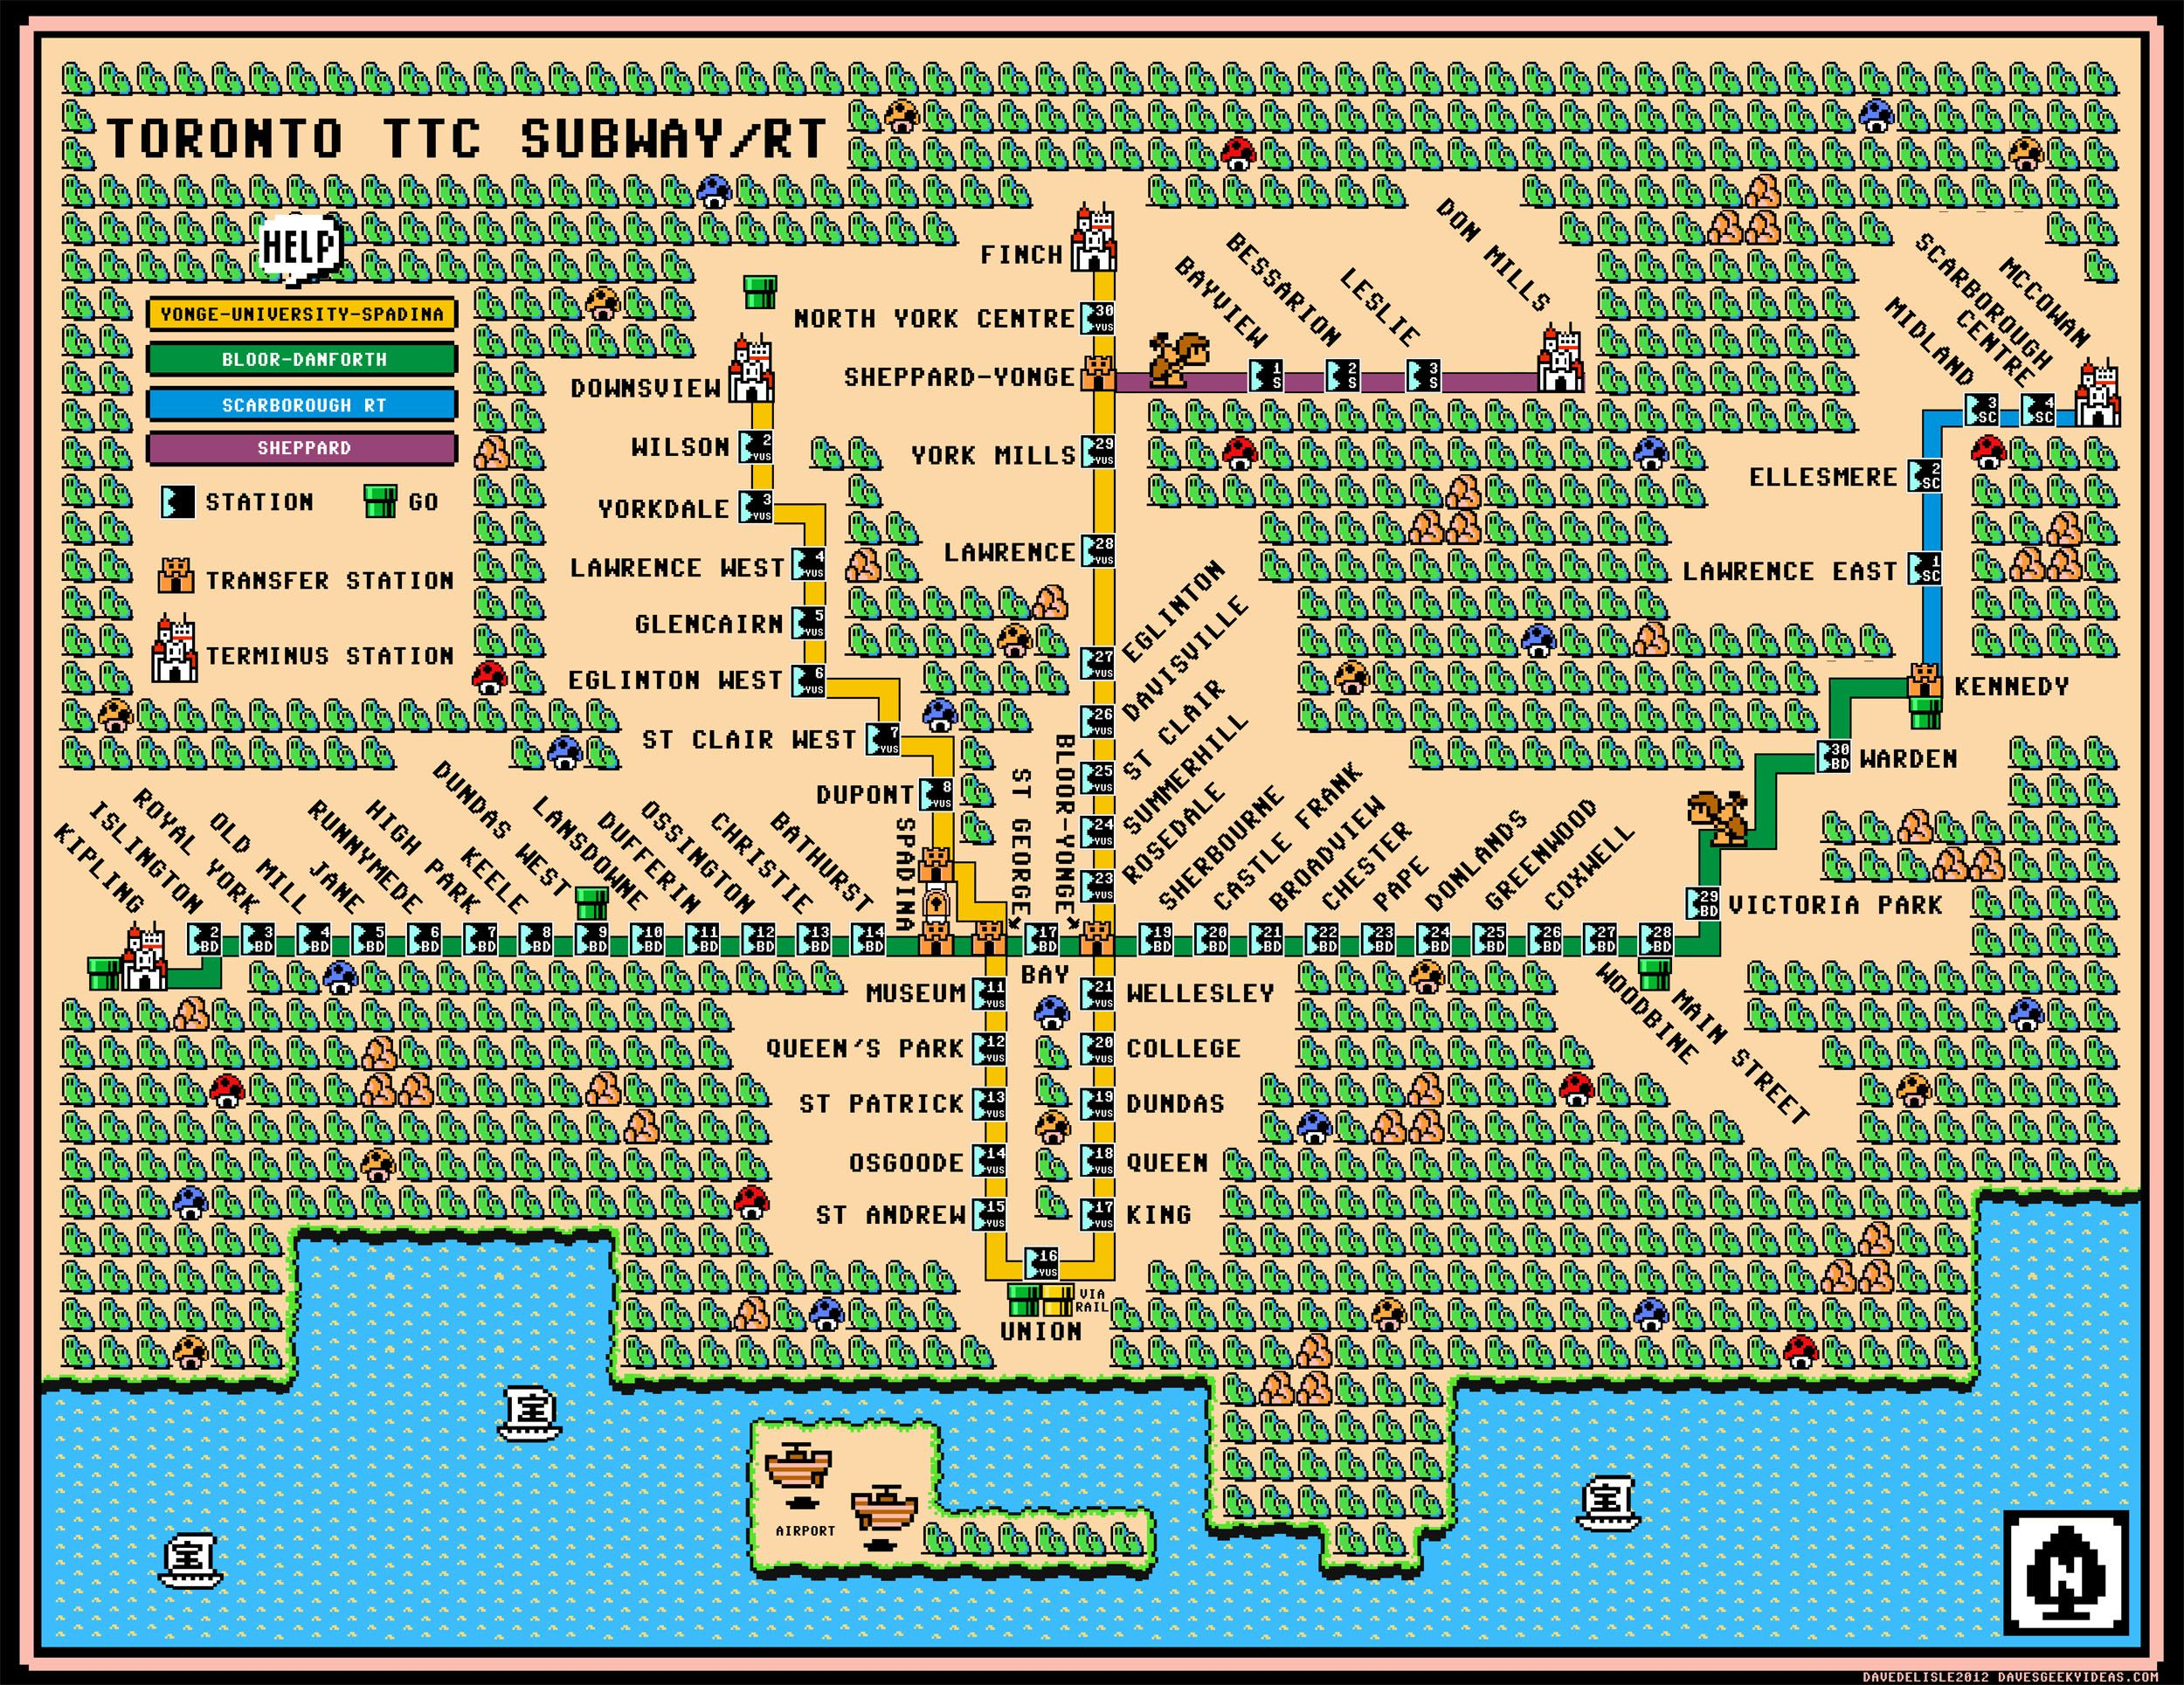 Toronto ttc subway rt map mario 3 wallpaper large 2012 unreal maps dave delisle of daves geeky ideas has got you covered heres the toronto ttc subwayrt map in the style of super mario gumiabroncs Image collections